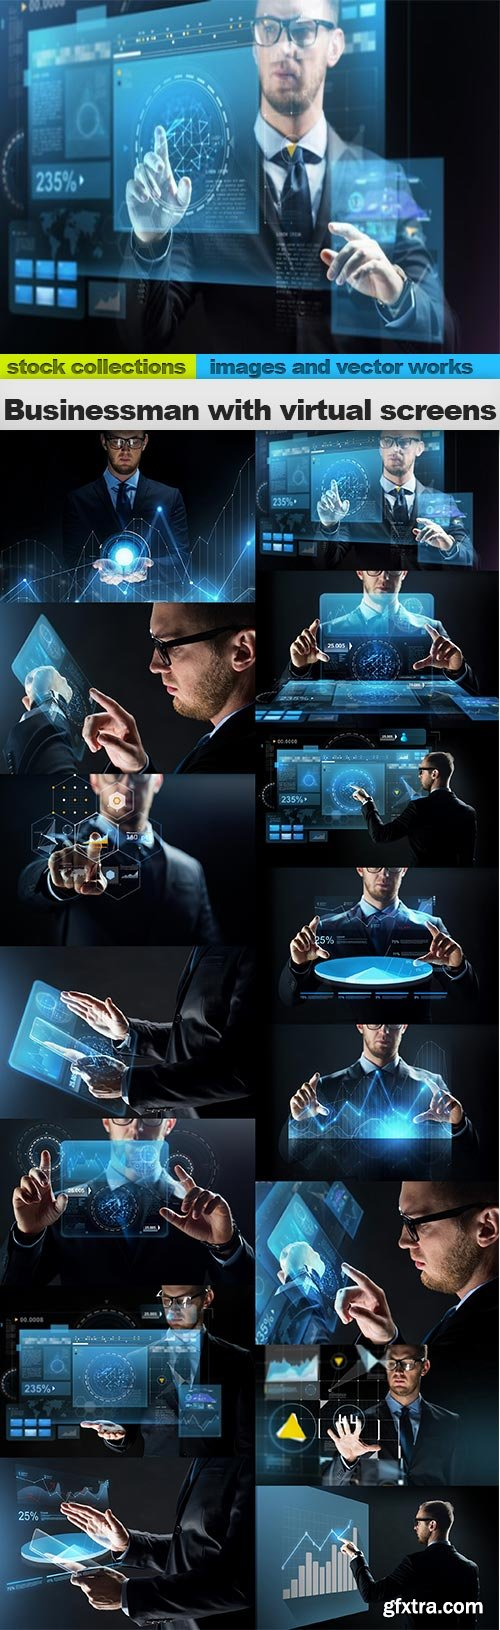 Businessman with virtual screens, 15 x UHQ JPEG